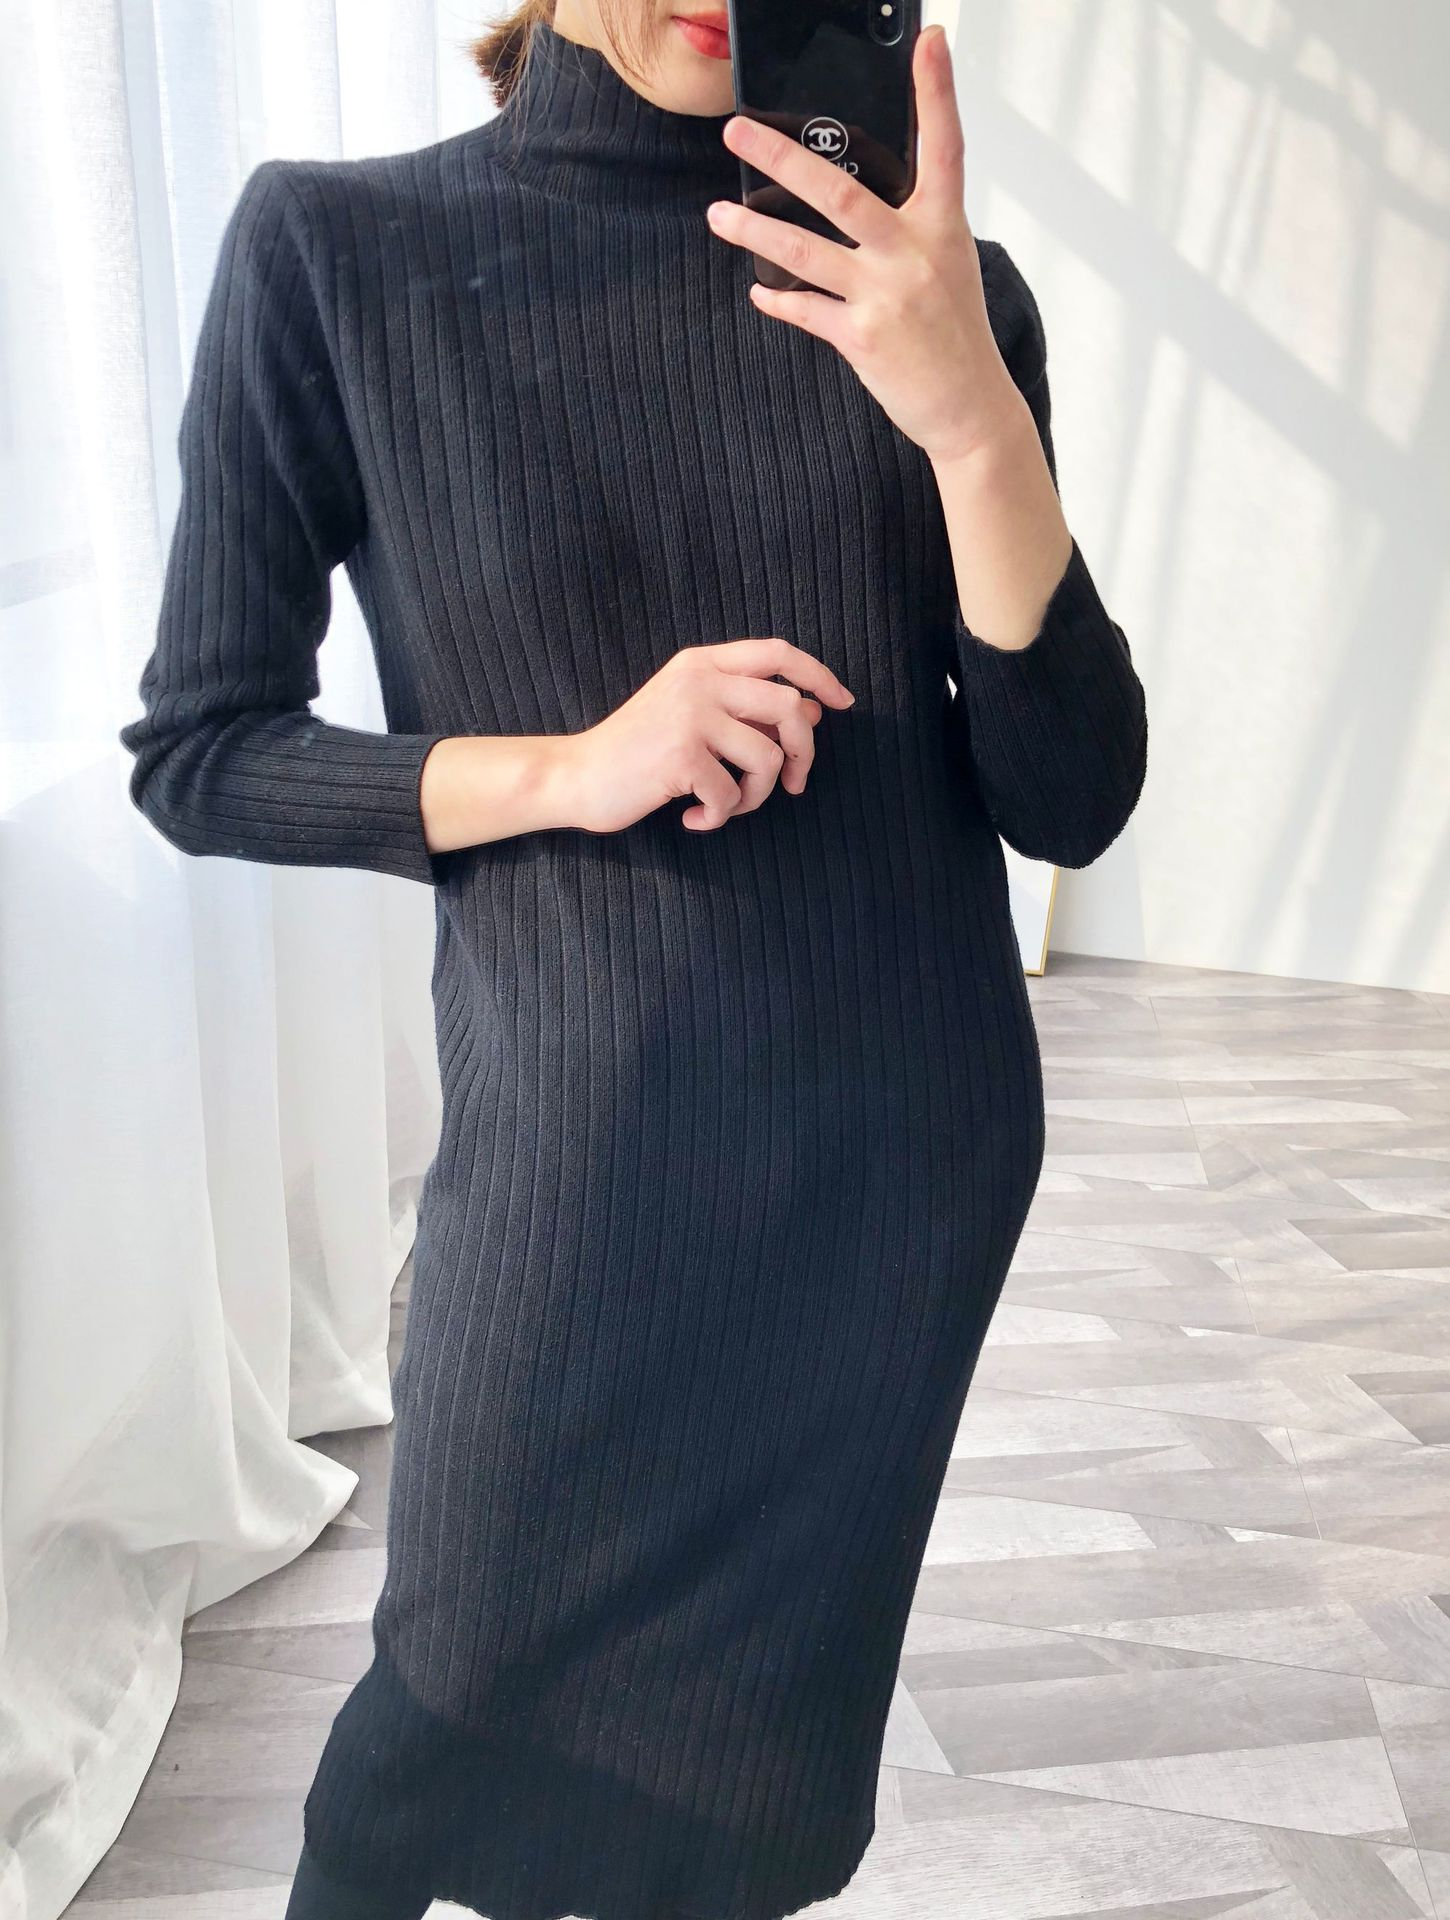 Women maxi dress Spring autumn 2019 new fashion Long Sleeve Sweater Knitted Dresses sexy Pencil Casual bodycon dress Vestidos